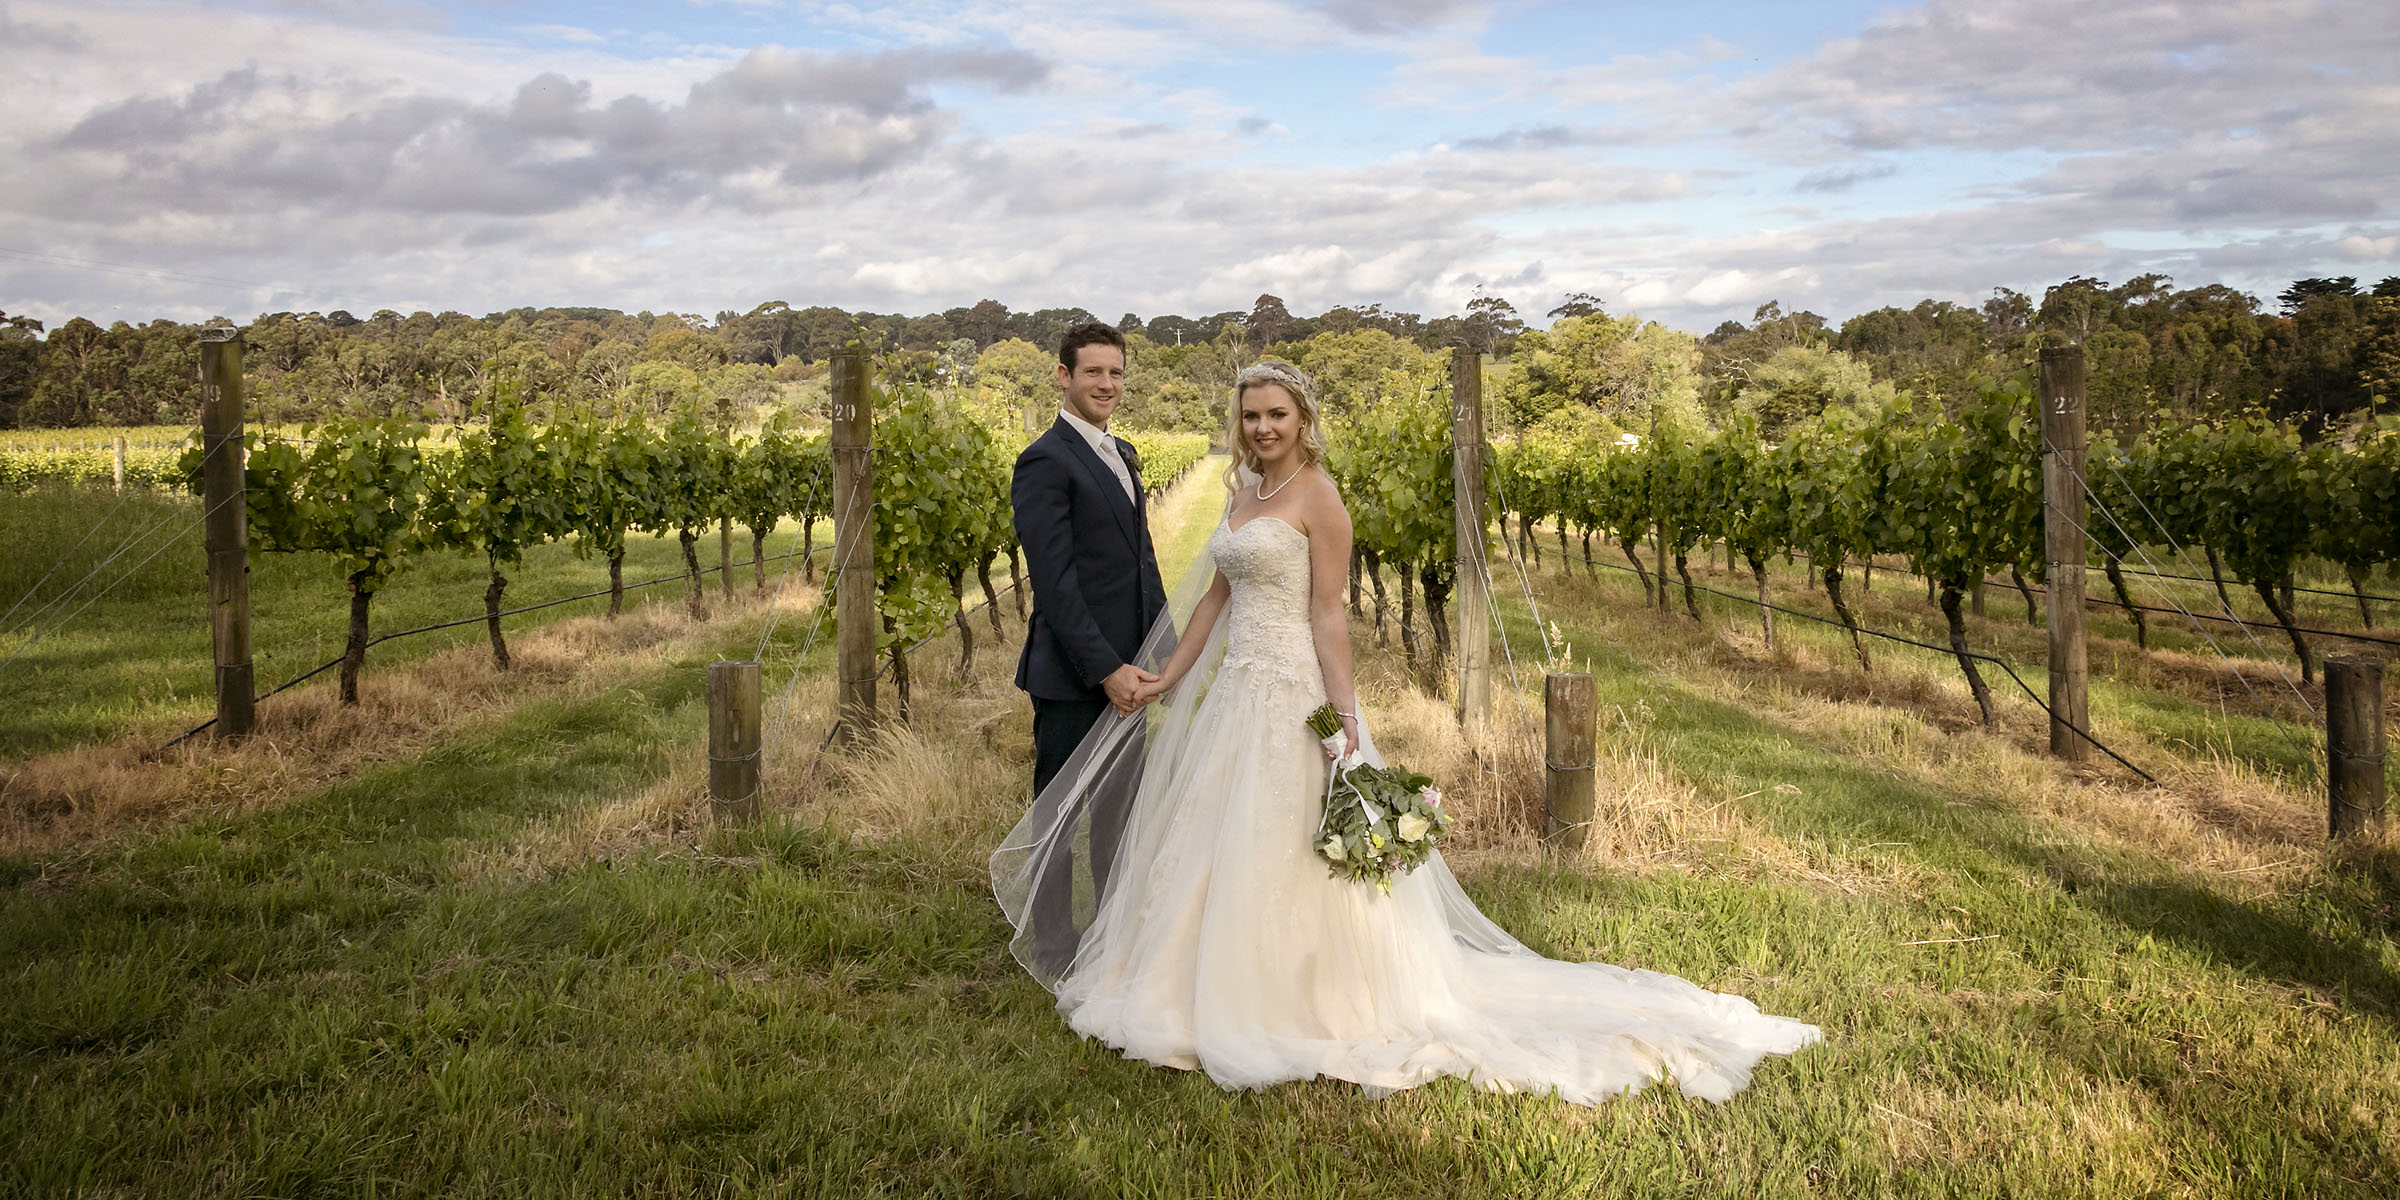 Narelle and Trent's wedding at Veraison Restaurant on the Mornington Peninsula